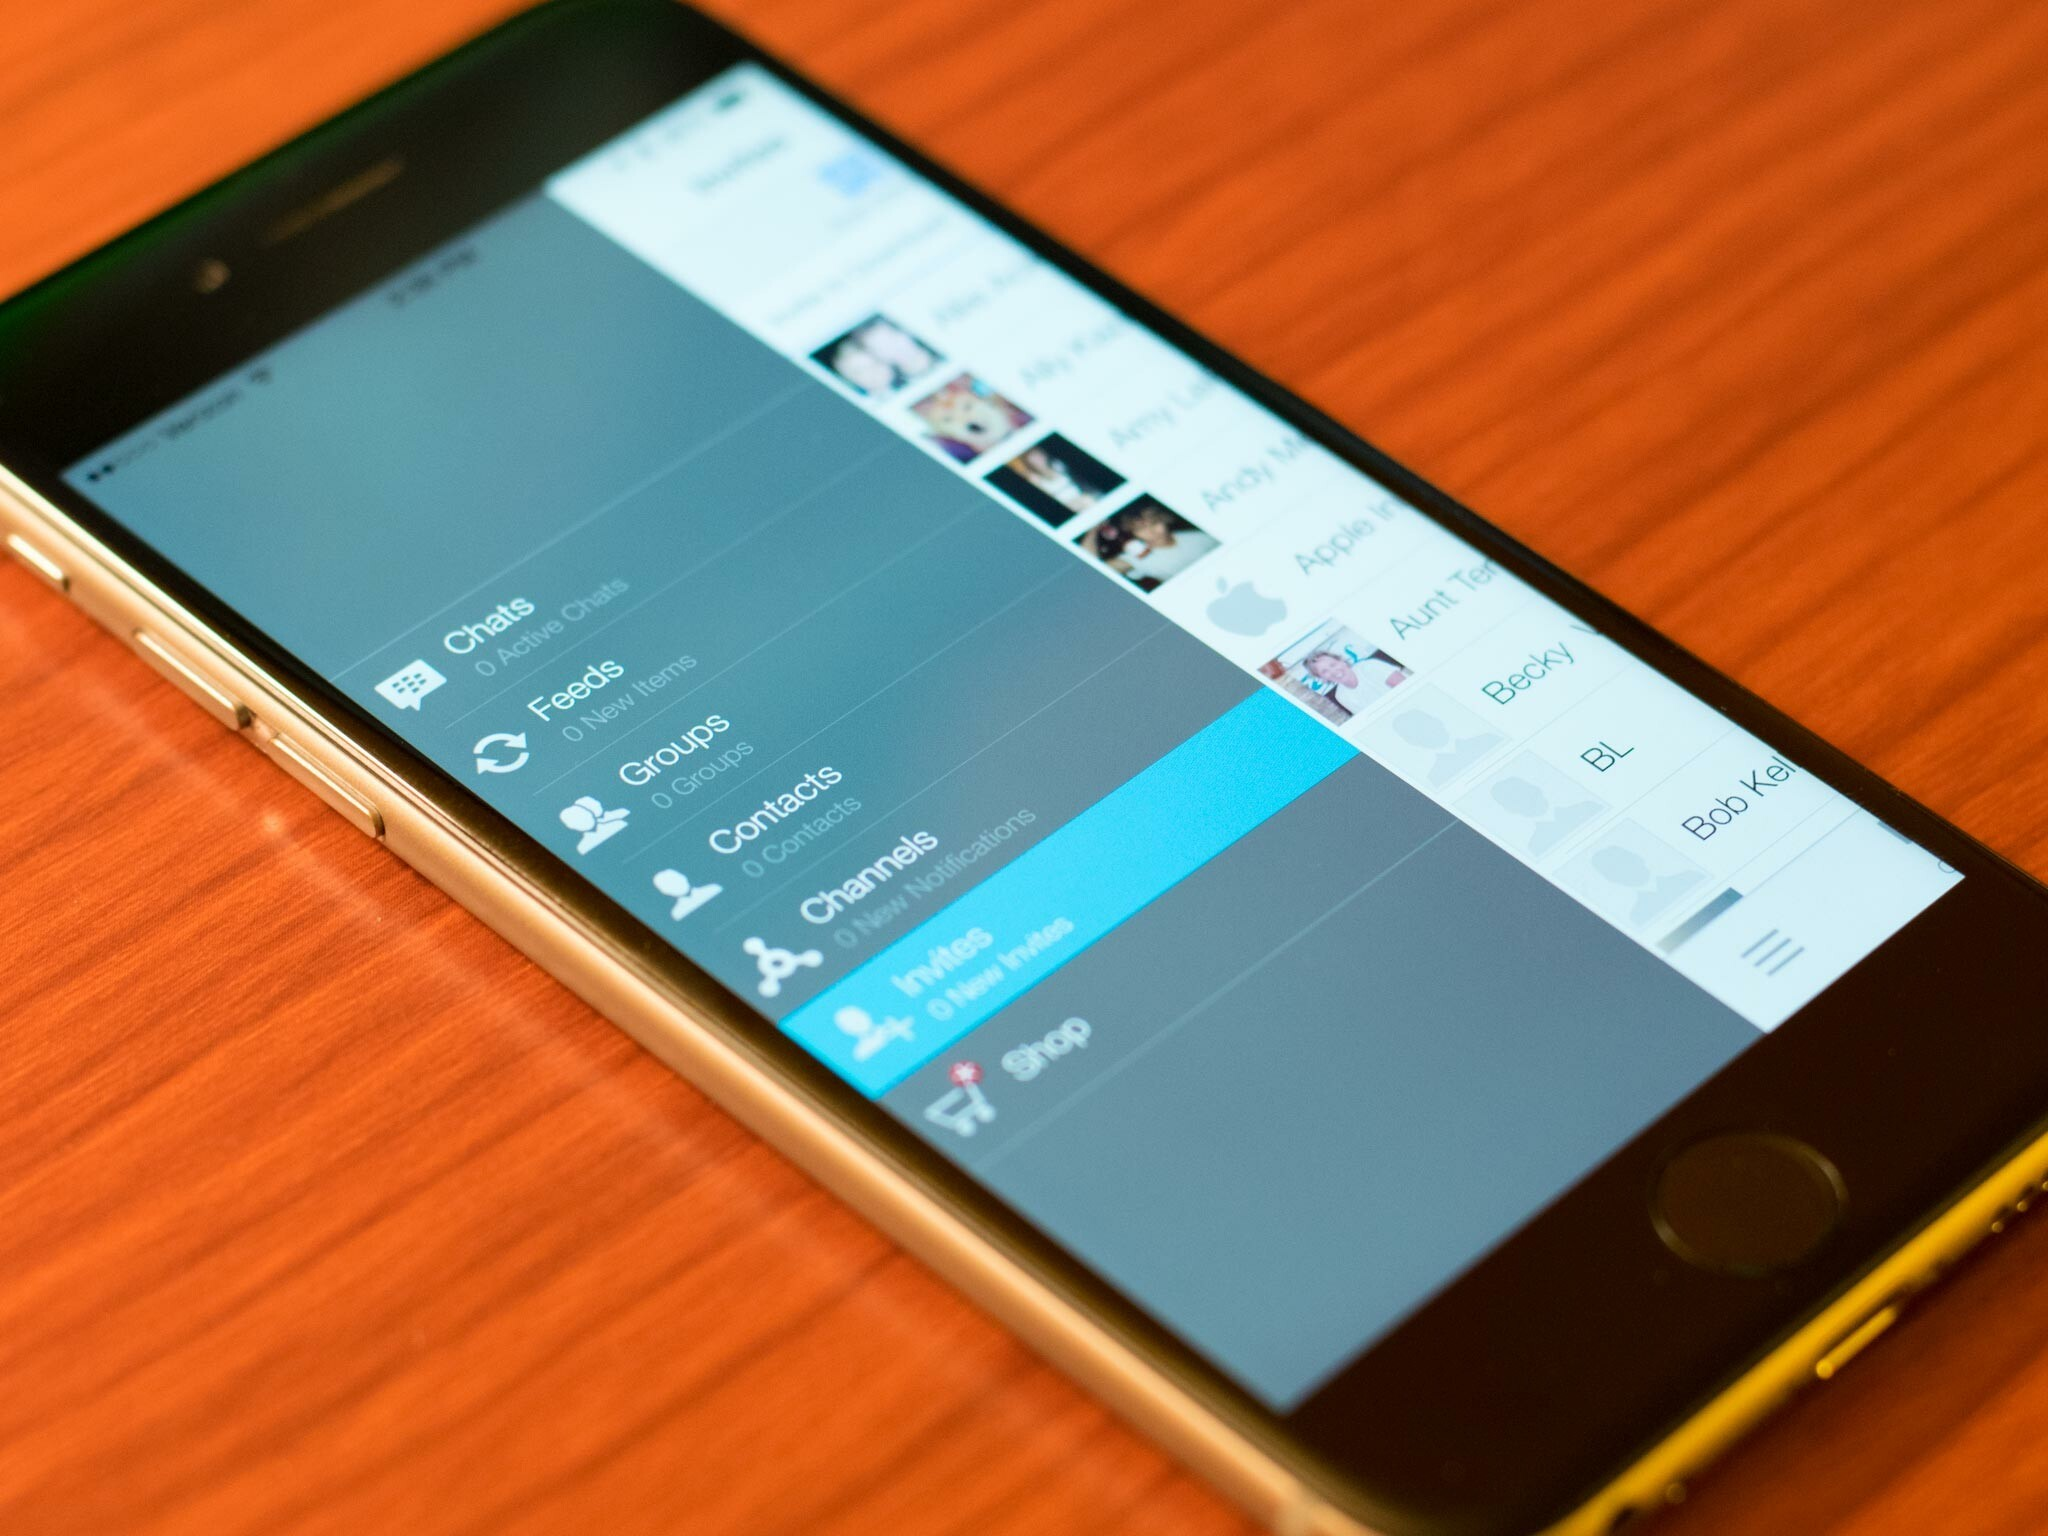 BBM for iOS beta moves into v2.7.0.33